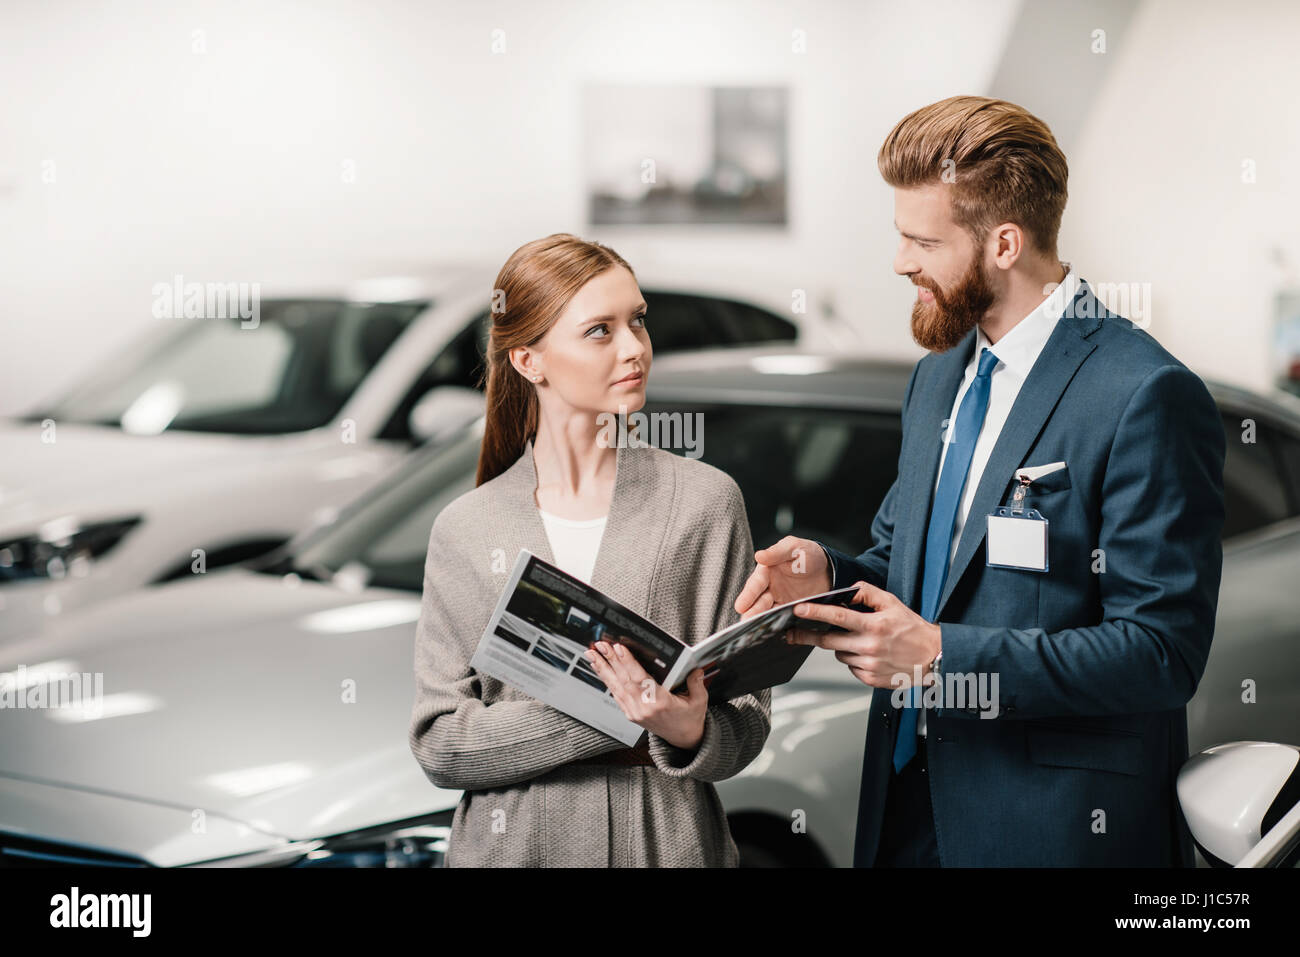 salesman in suit showing catalog to customer in dealership salon - Stock Image